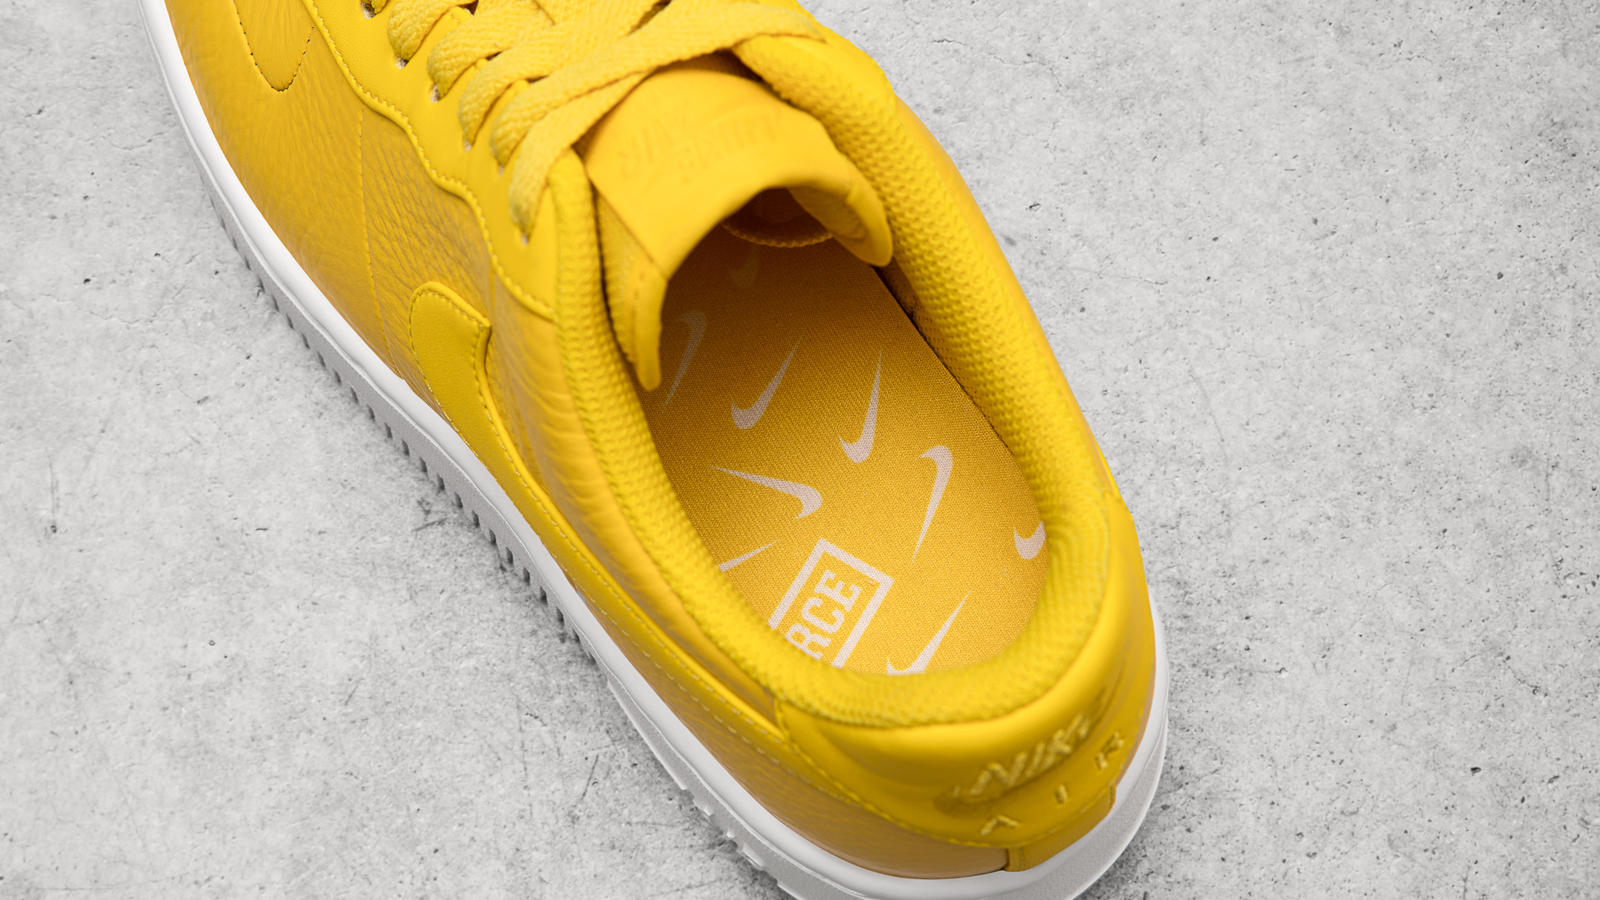 Bread and butter af1 5 hd 1600